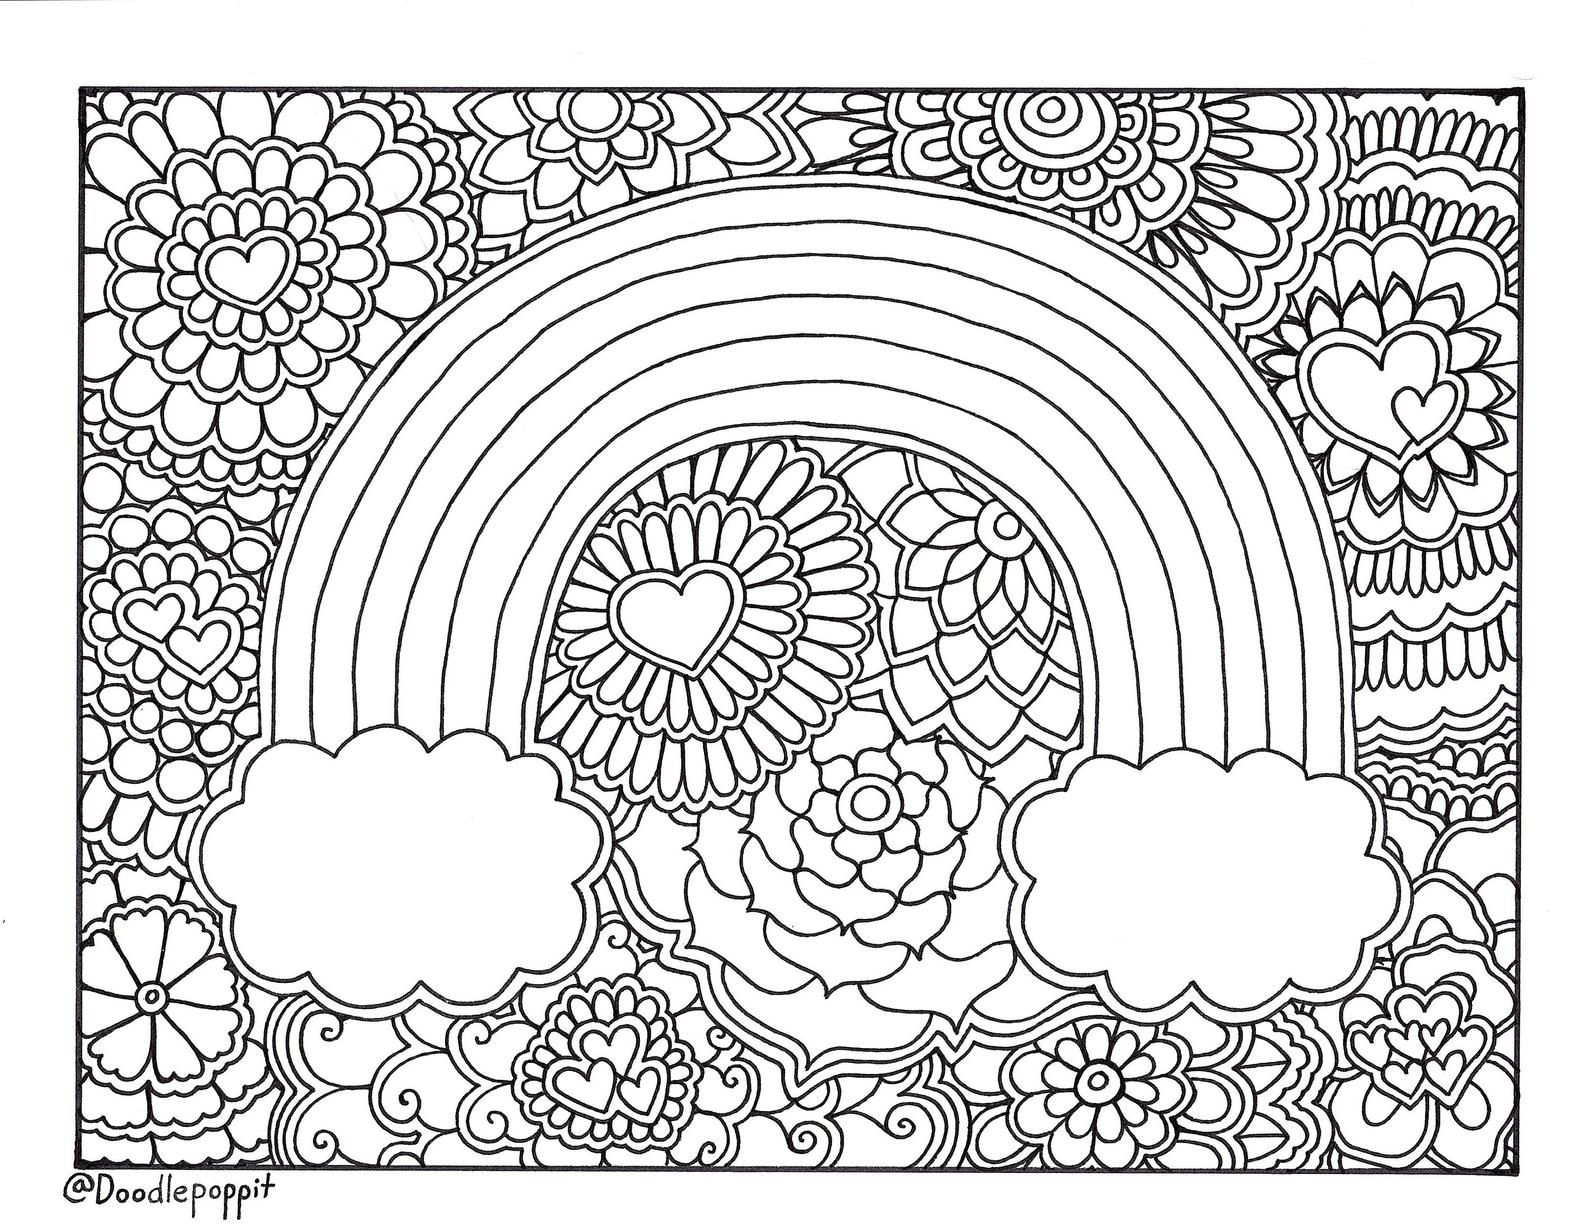 Rainbow Pride Coloring Page Coloring Book Page Printable Etsy In 2020 Detailed Coloring Pages Unicorn Coloring Pages Coloring Book Pages